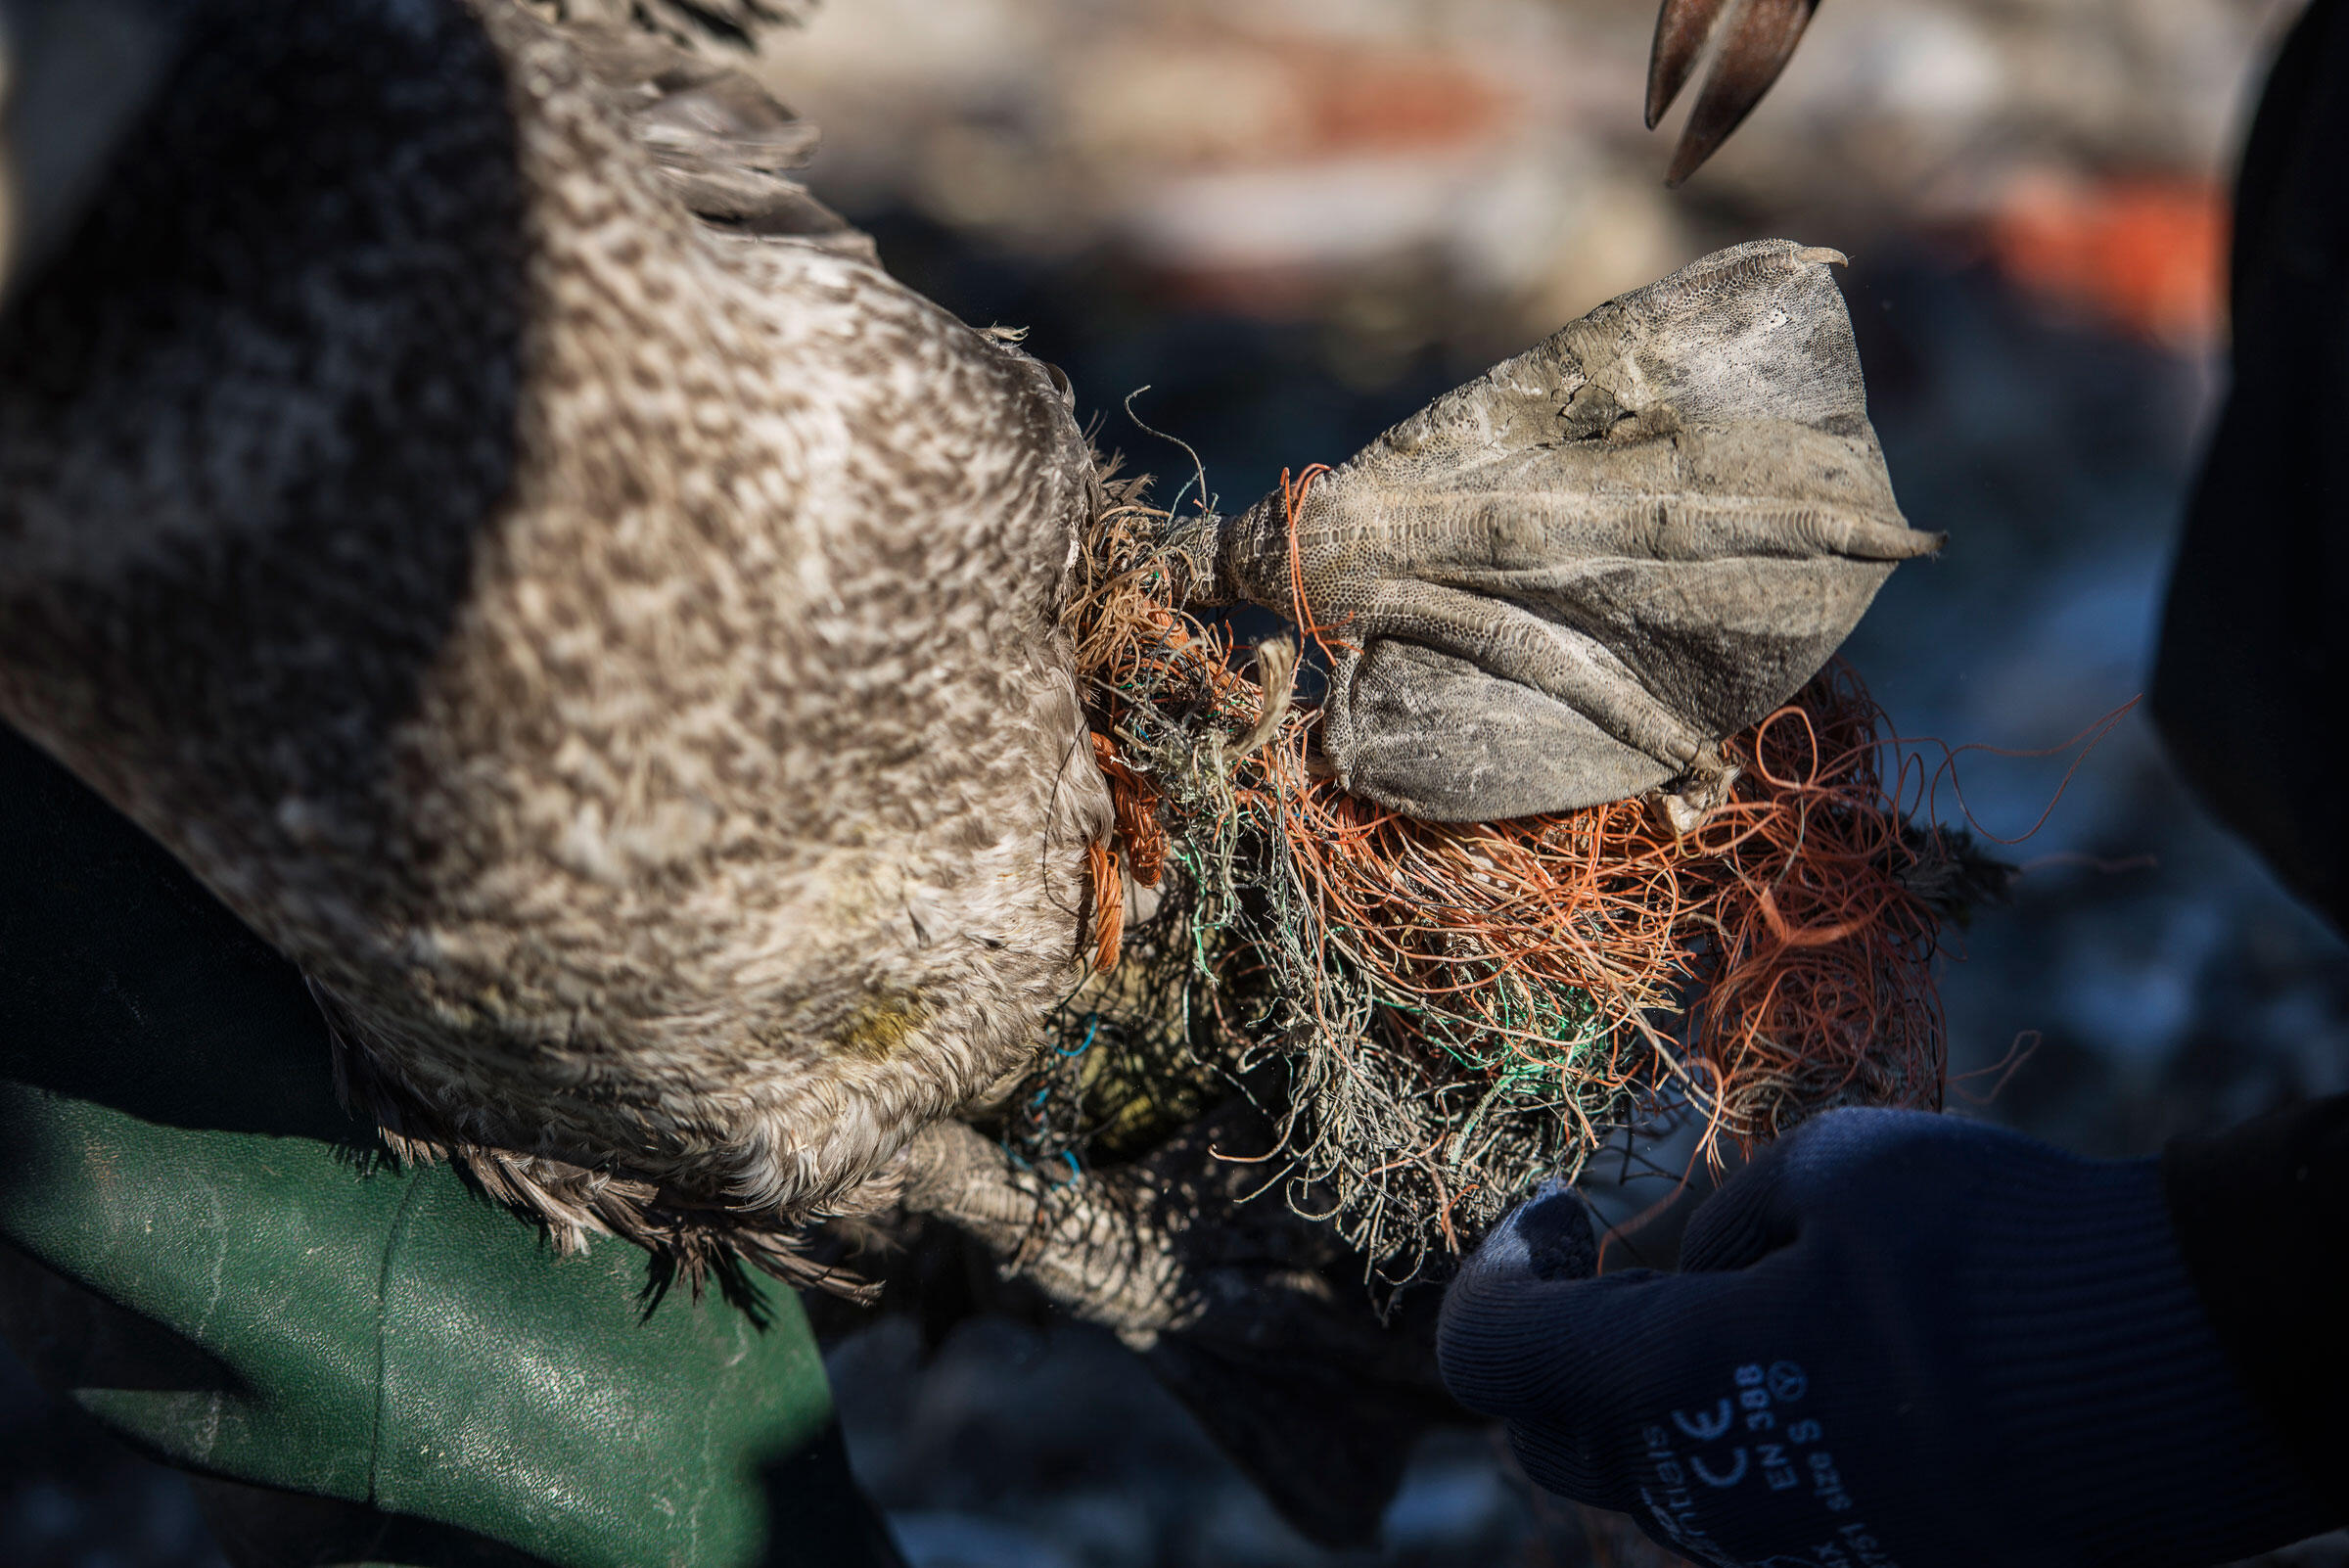 The foot of a young gannet has become entangled in a mass of plastic fibers; in extreme instances, the trash can cause foot or wing deformities, and even sever the limbs. Sam Hobson